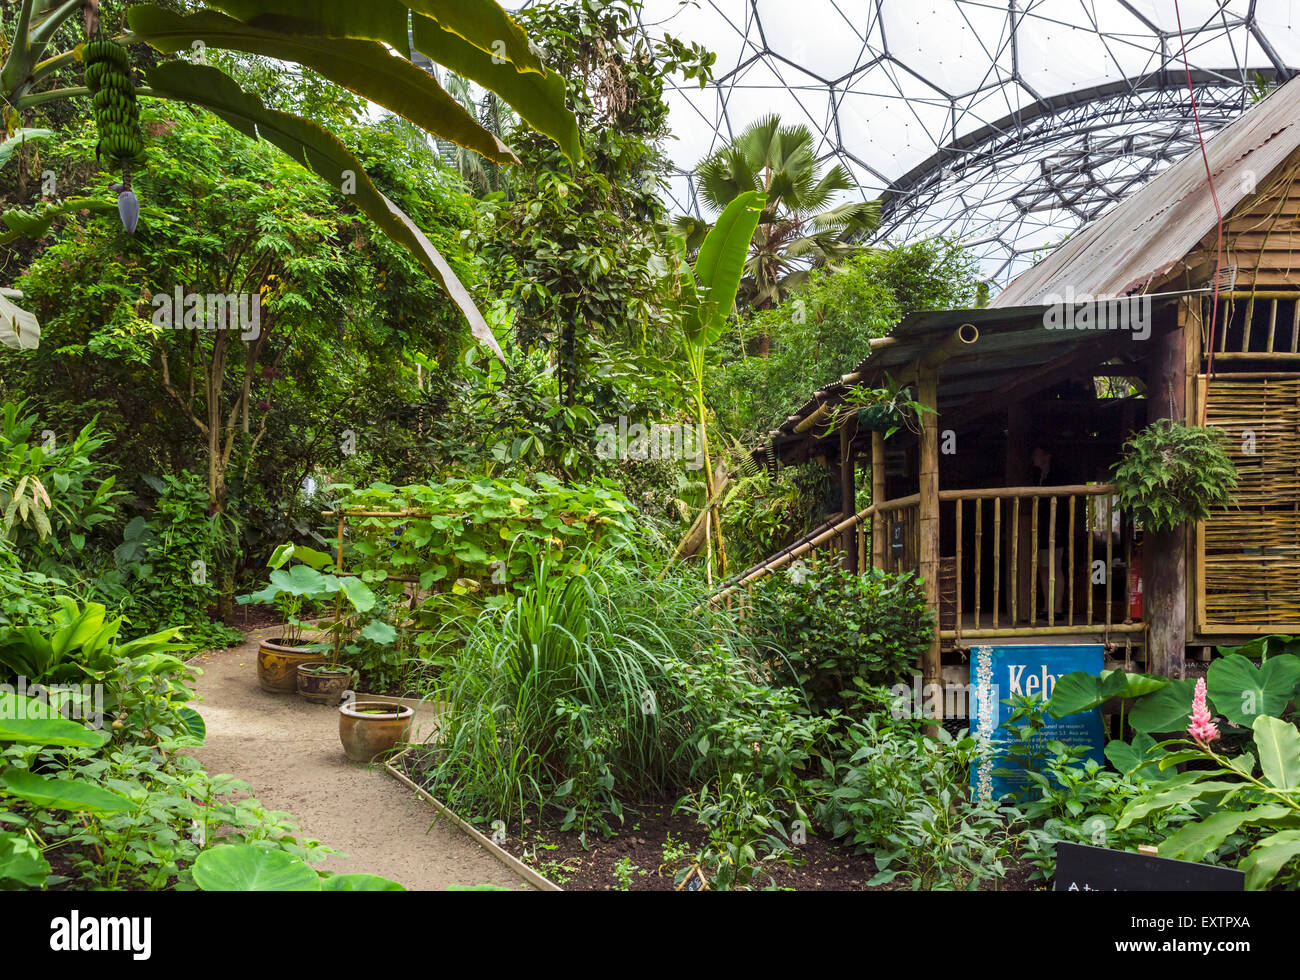 Interior of Rainforest Biome at the Eden Project, Bodelva, near St Austell, Cornwall, England, UK - Stock Image